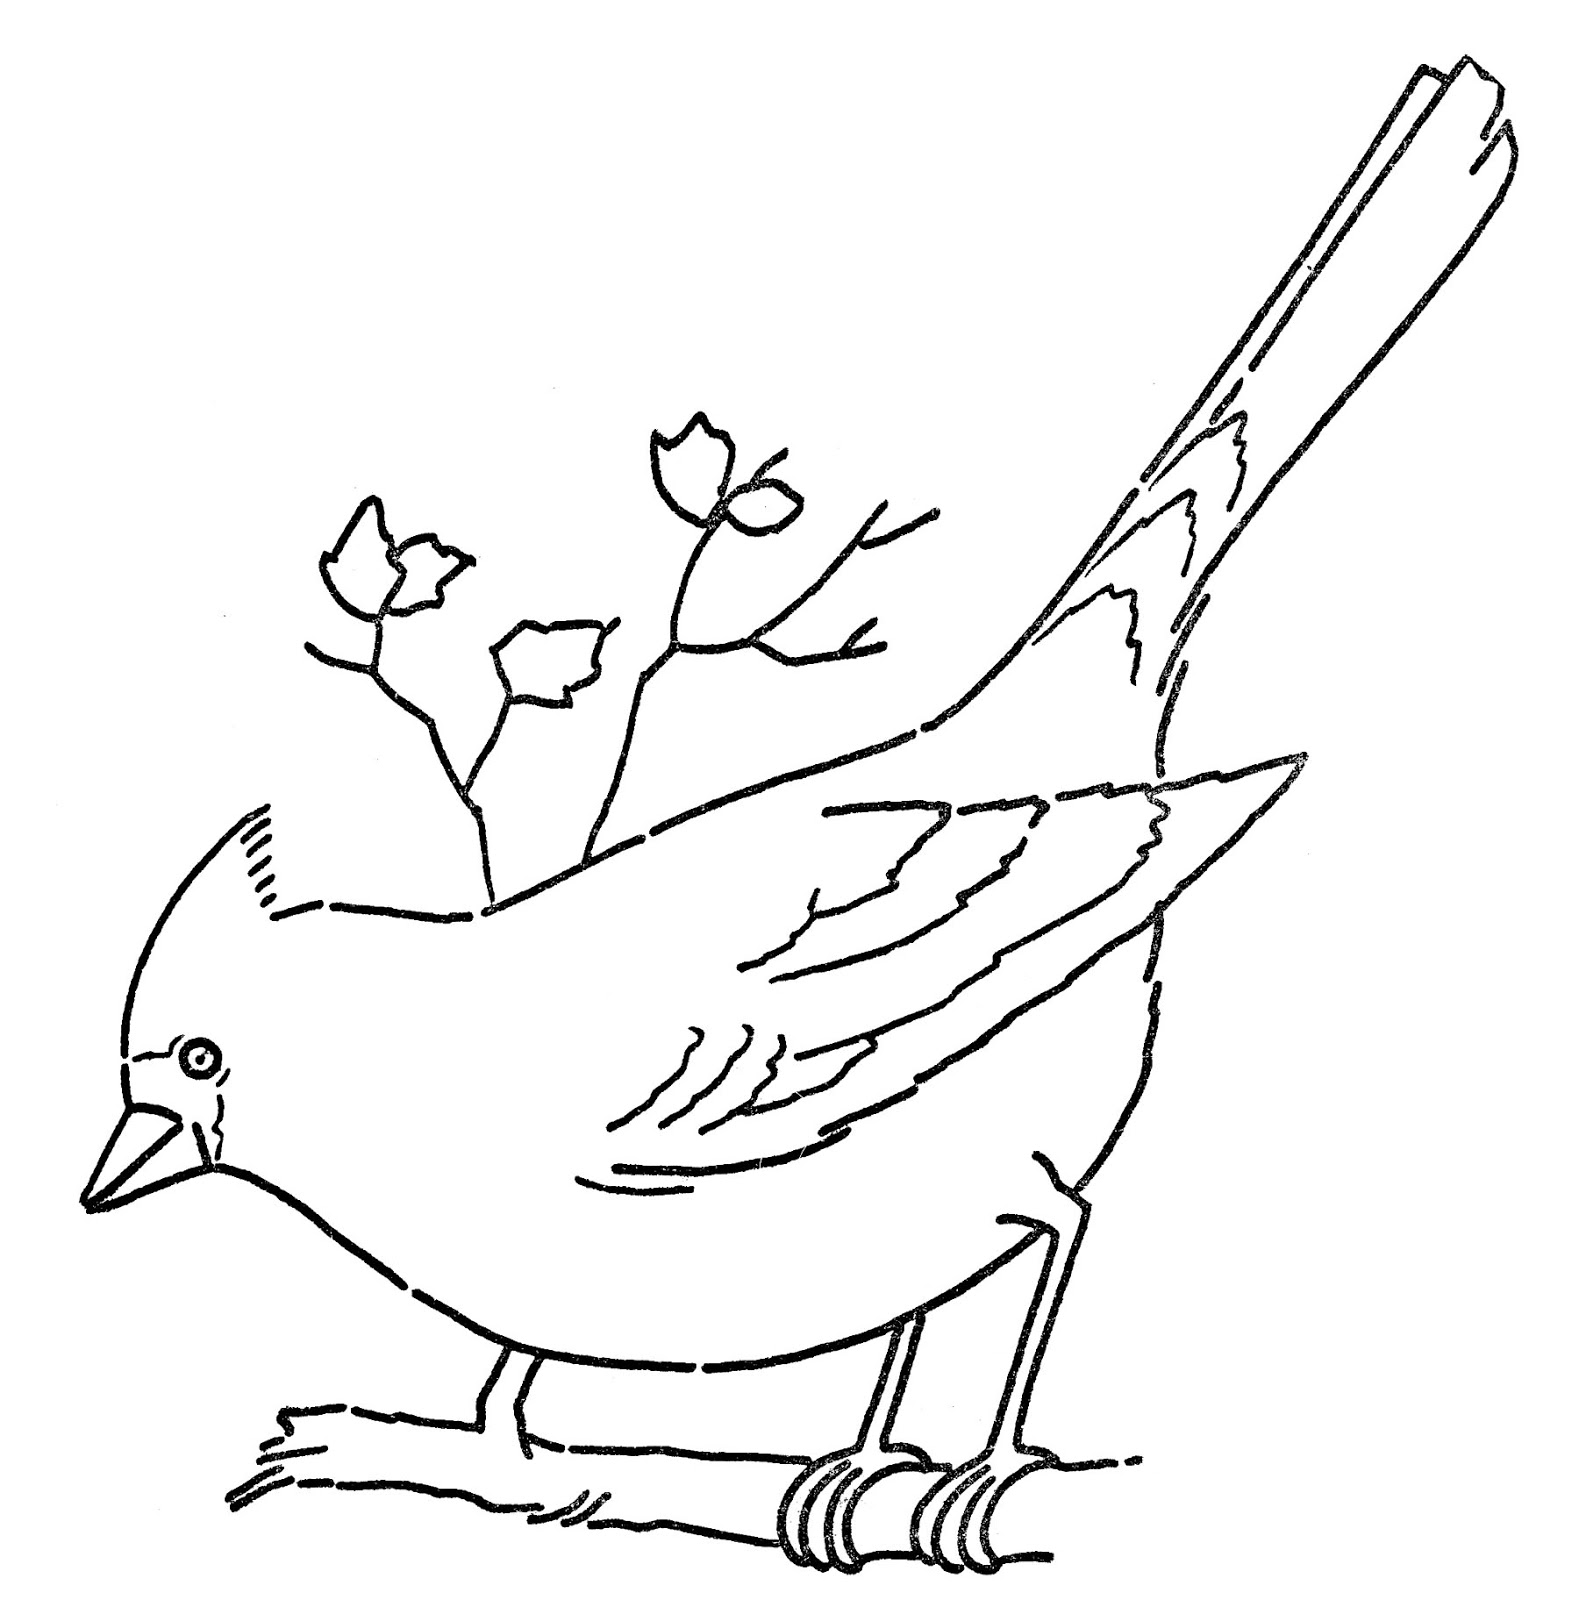 Quail Line Art : Line art coloring page cardinal on branch the